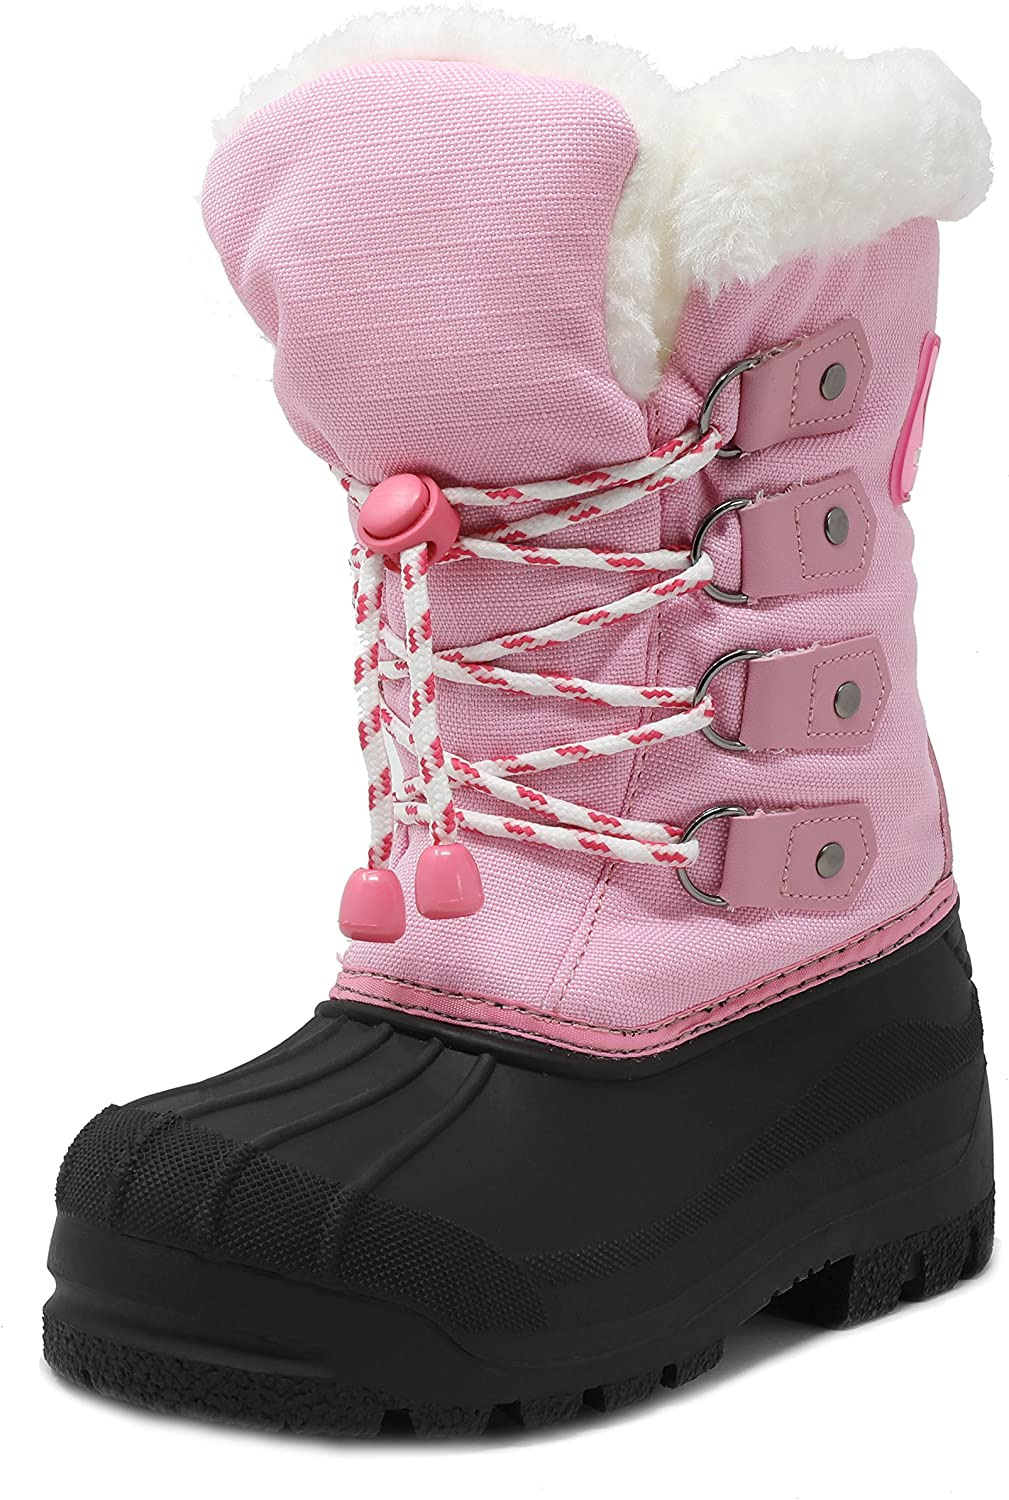 DREAM PAIRS Boys Girls Knee Superlatite High Boots Snow Lit Winter Toddler Spring new work one after another